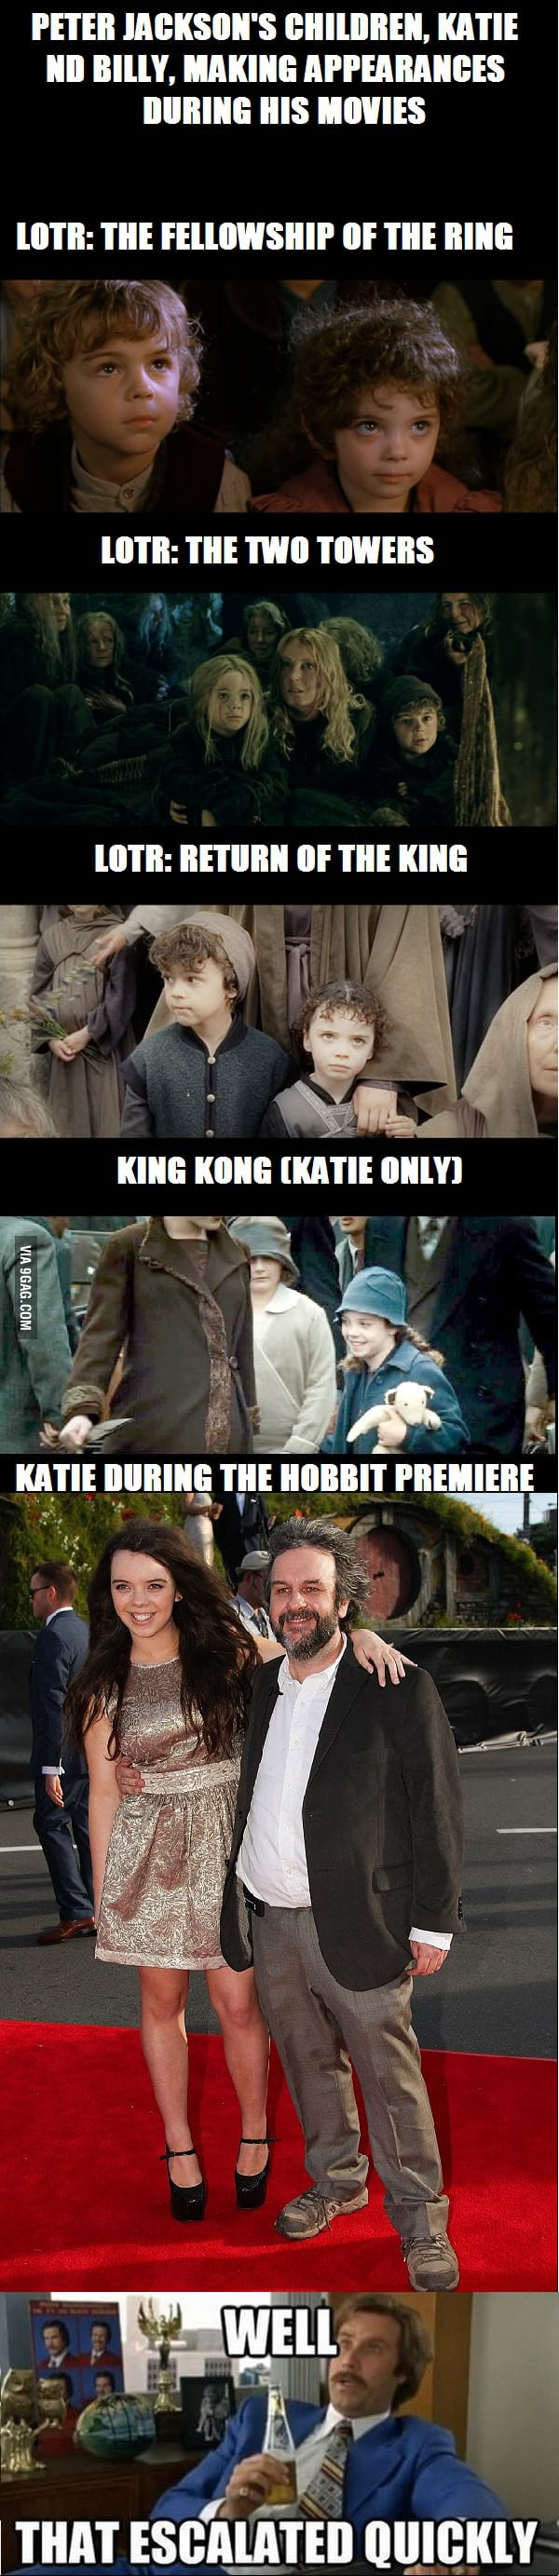 Peter Jackson's kids throughout the years